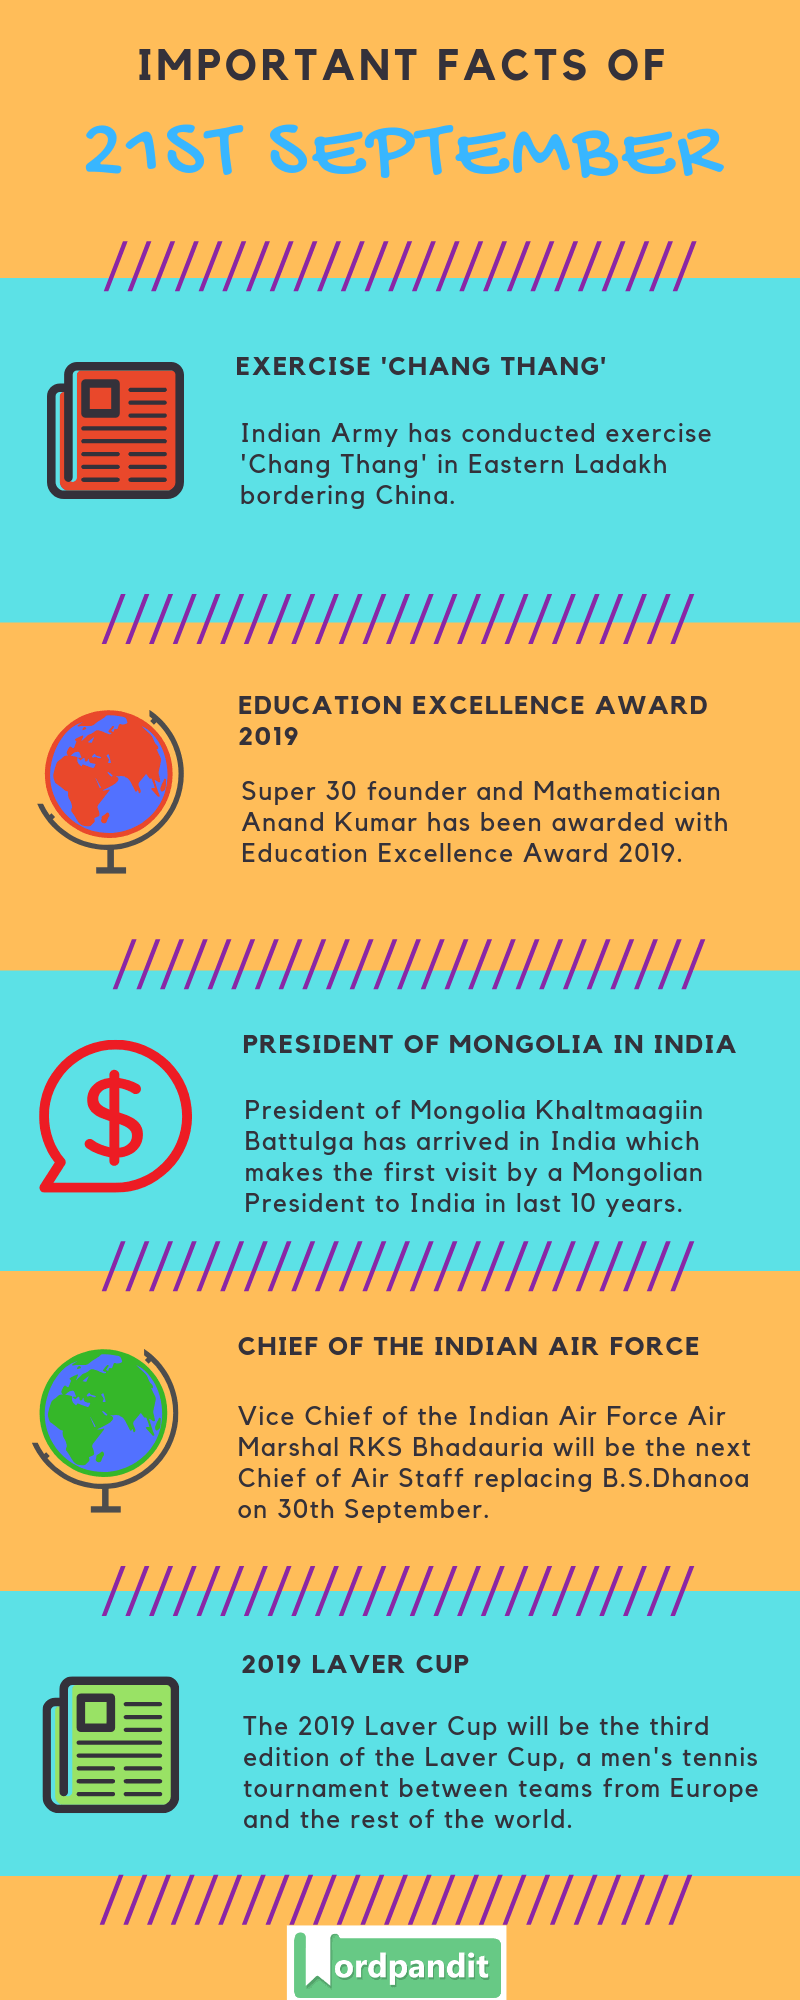 Daily Current Affairs 21 September 2019 Current Affairs Quiz 21 September 2019 Current Affairs Infographic